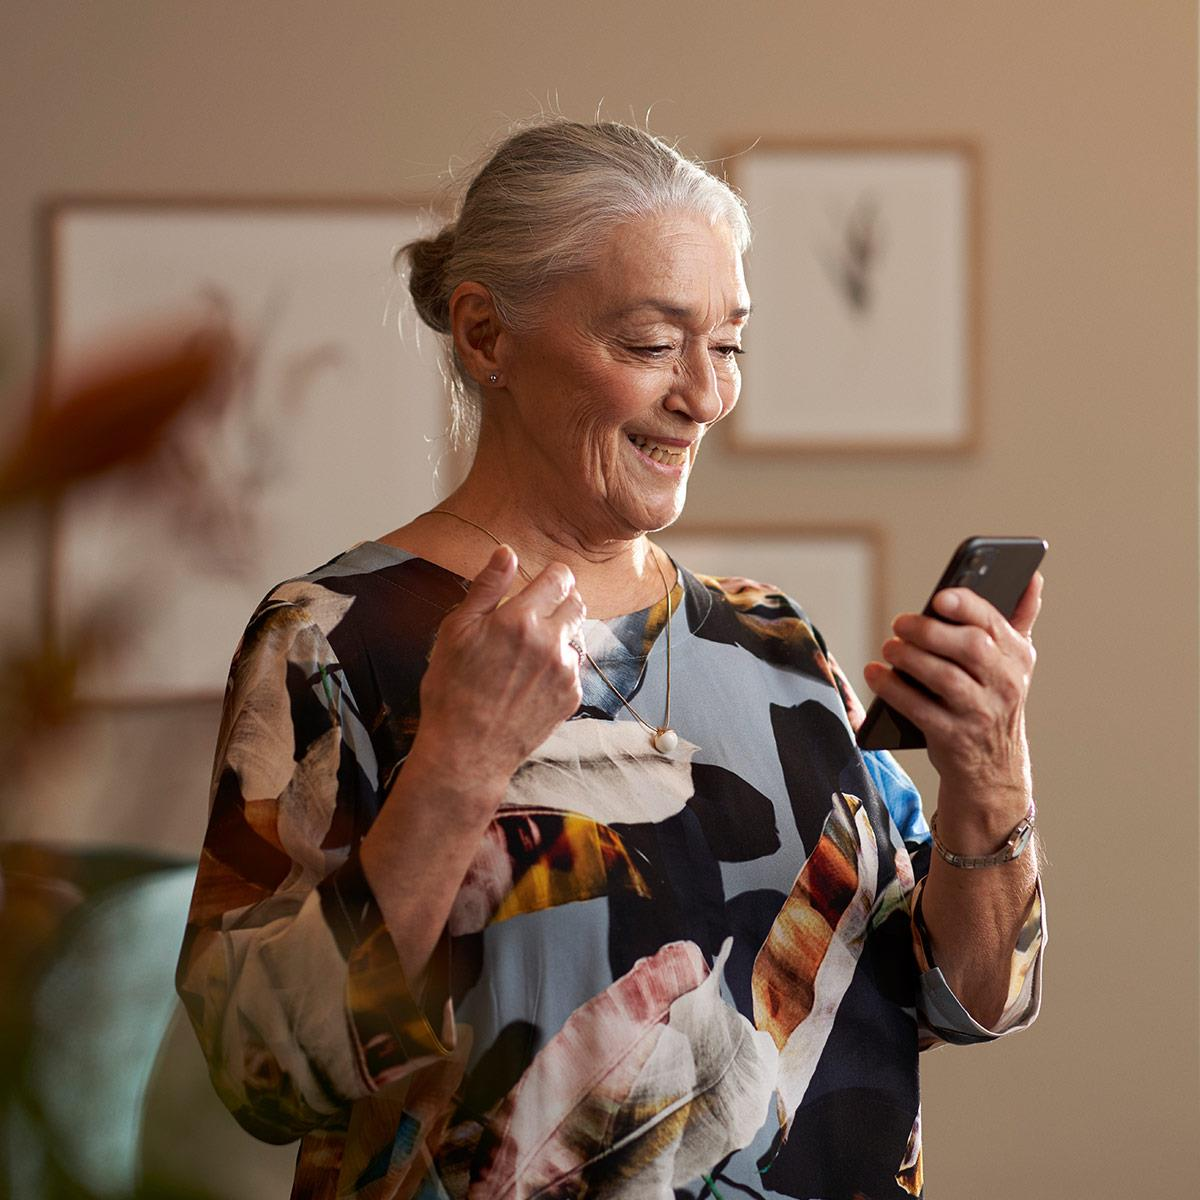 Use ReSound Smart 3D app to remote fine tune your latest hearing aid with the most natural sound quality - ReSound ONE